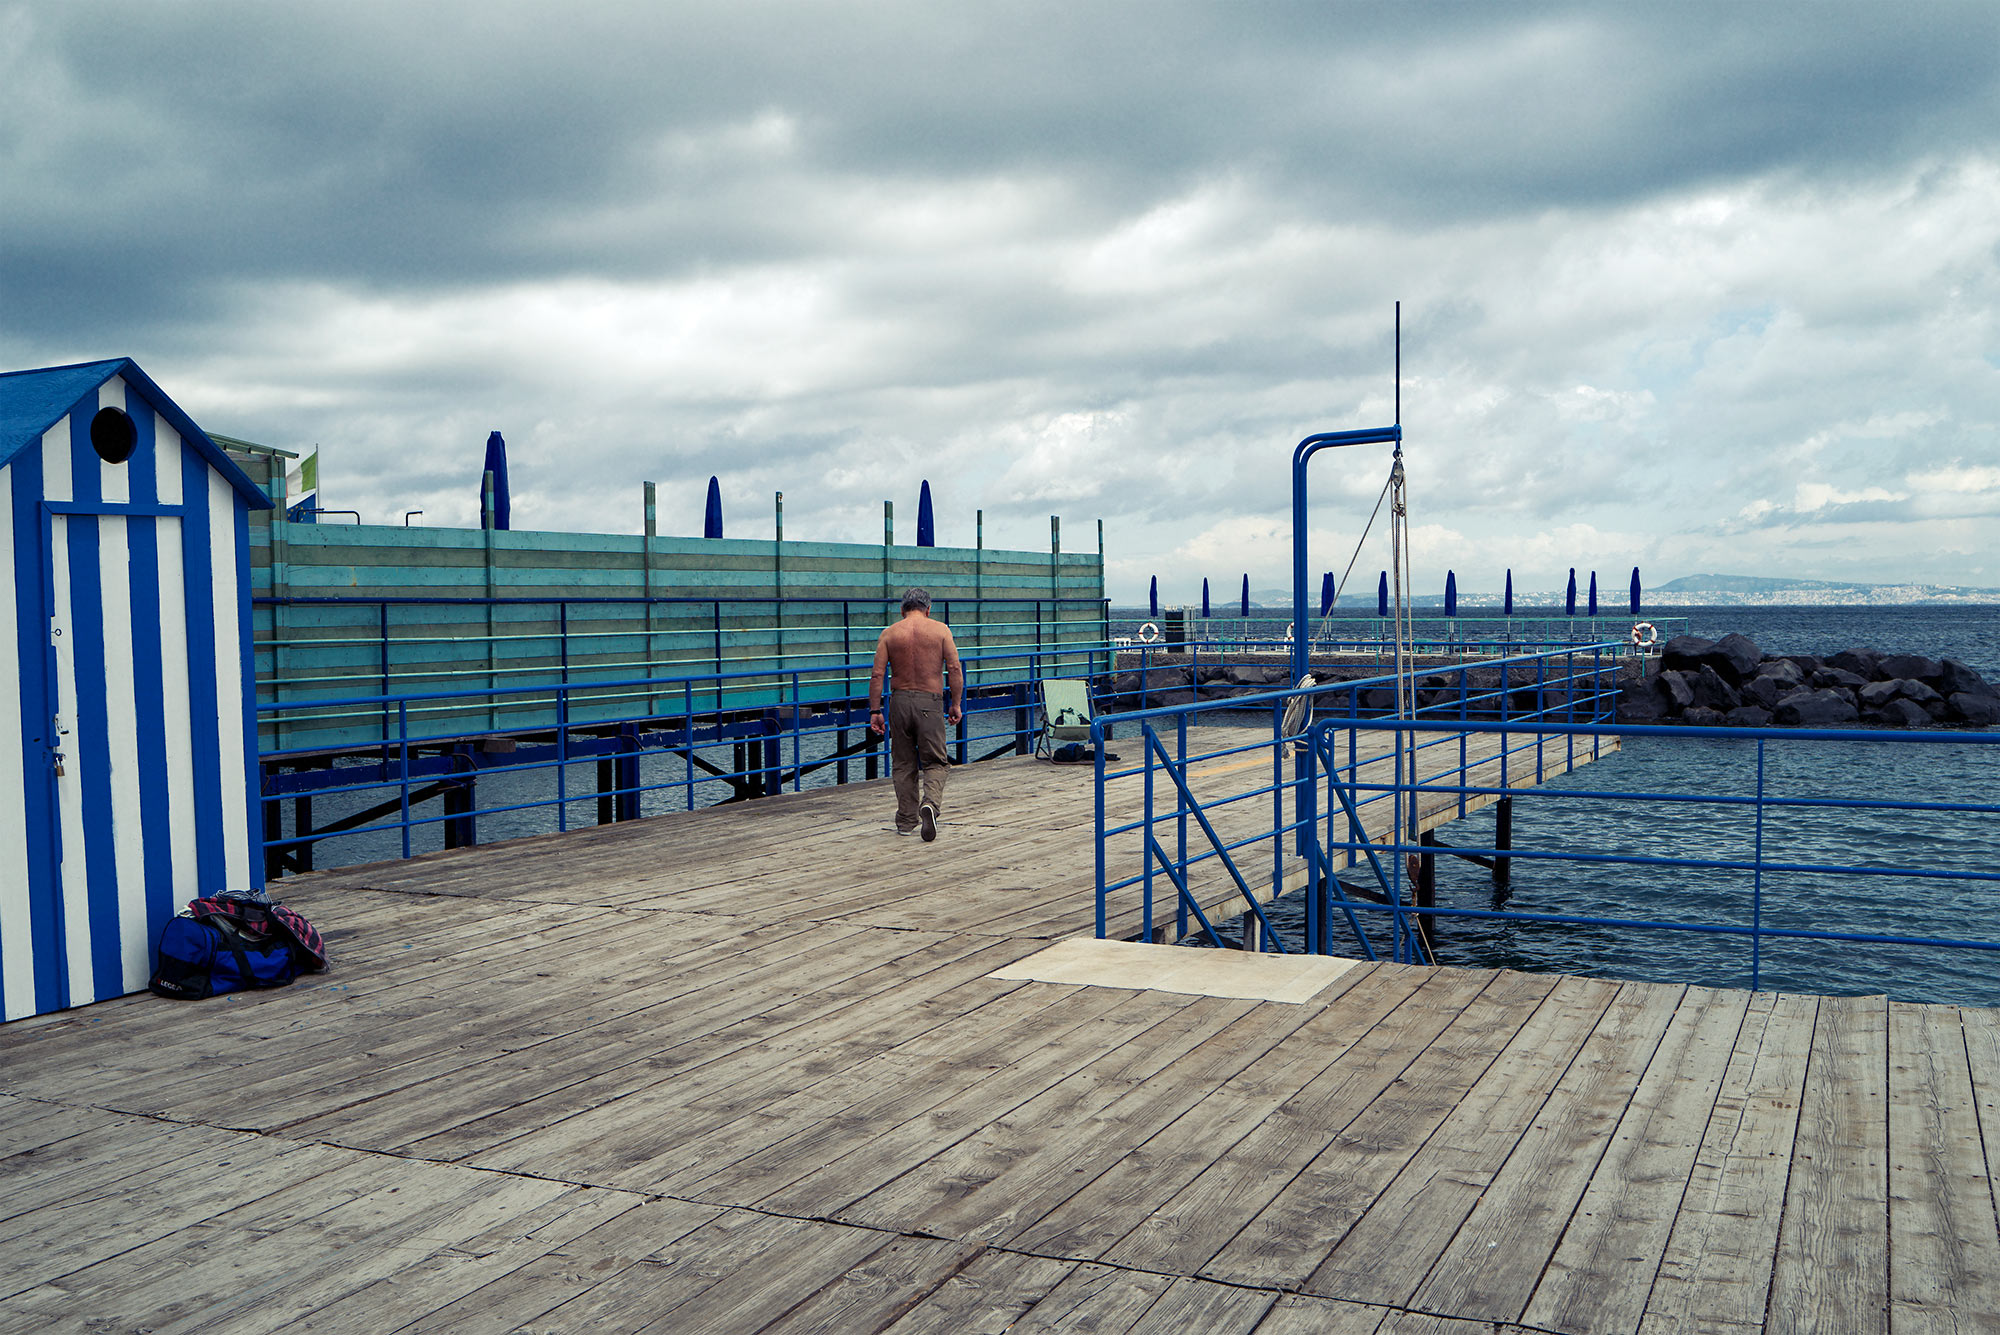 Good Boy Wolf Photographer, filmic portrait,  man walking down decking next to the sea